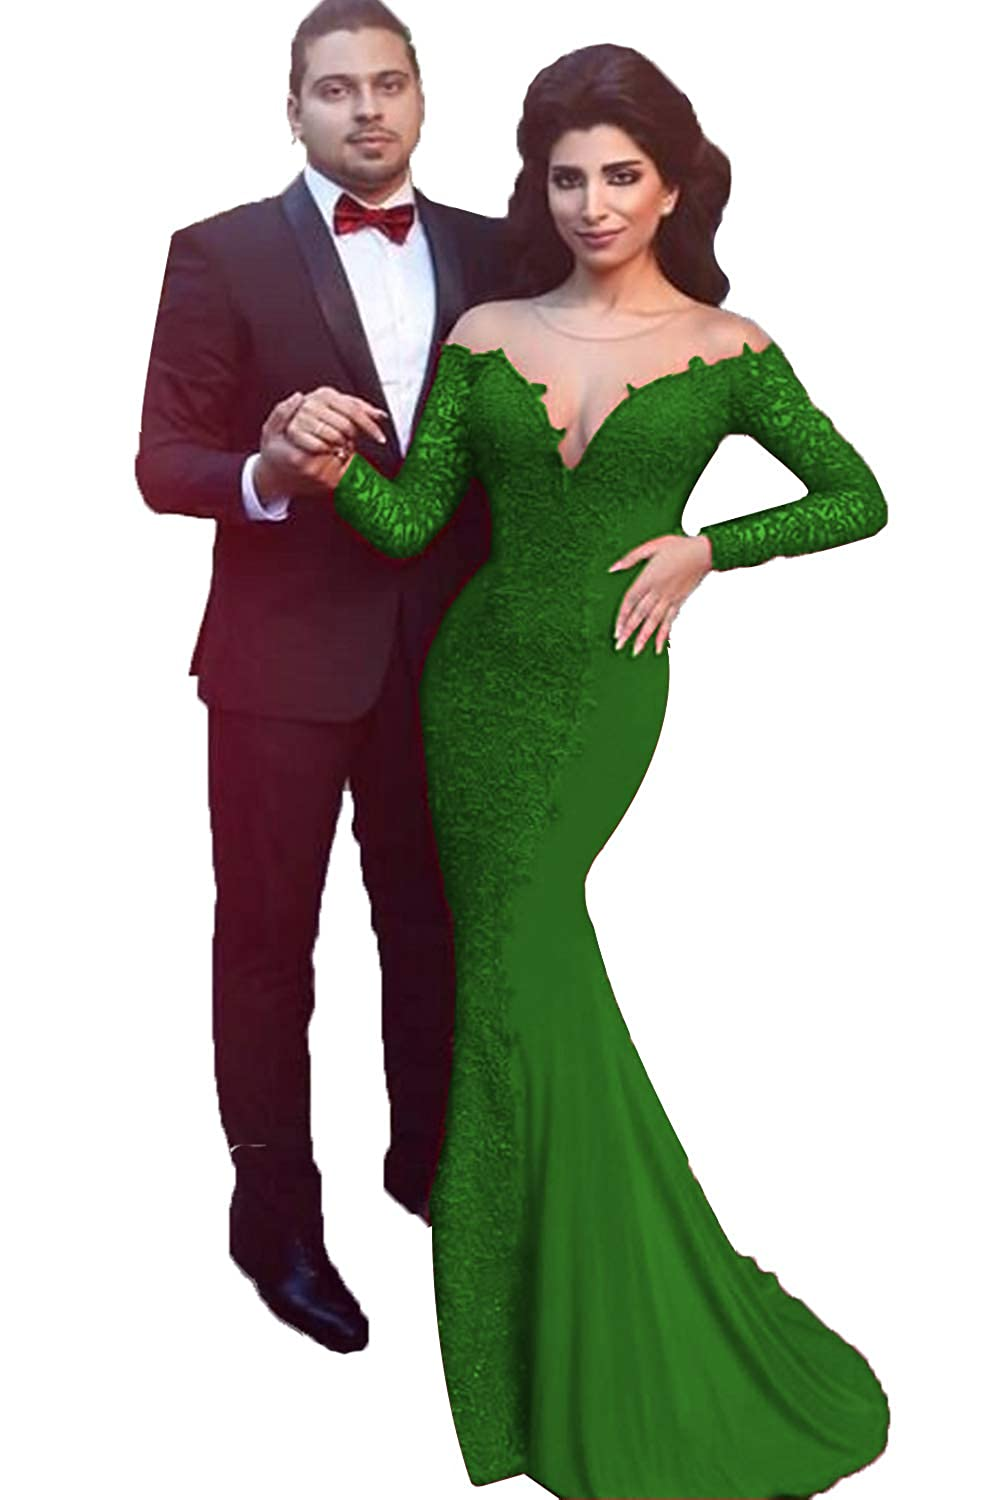 Emeraled Green SDRESS Women's Lace Applique Mermaid Formal Dress Long Sleeve Illusion Neck Evening Gowns